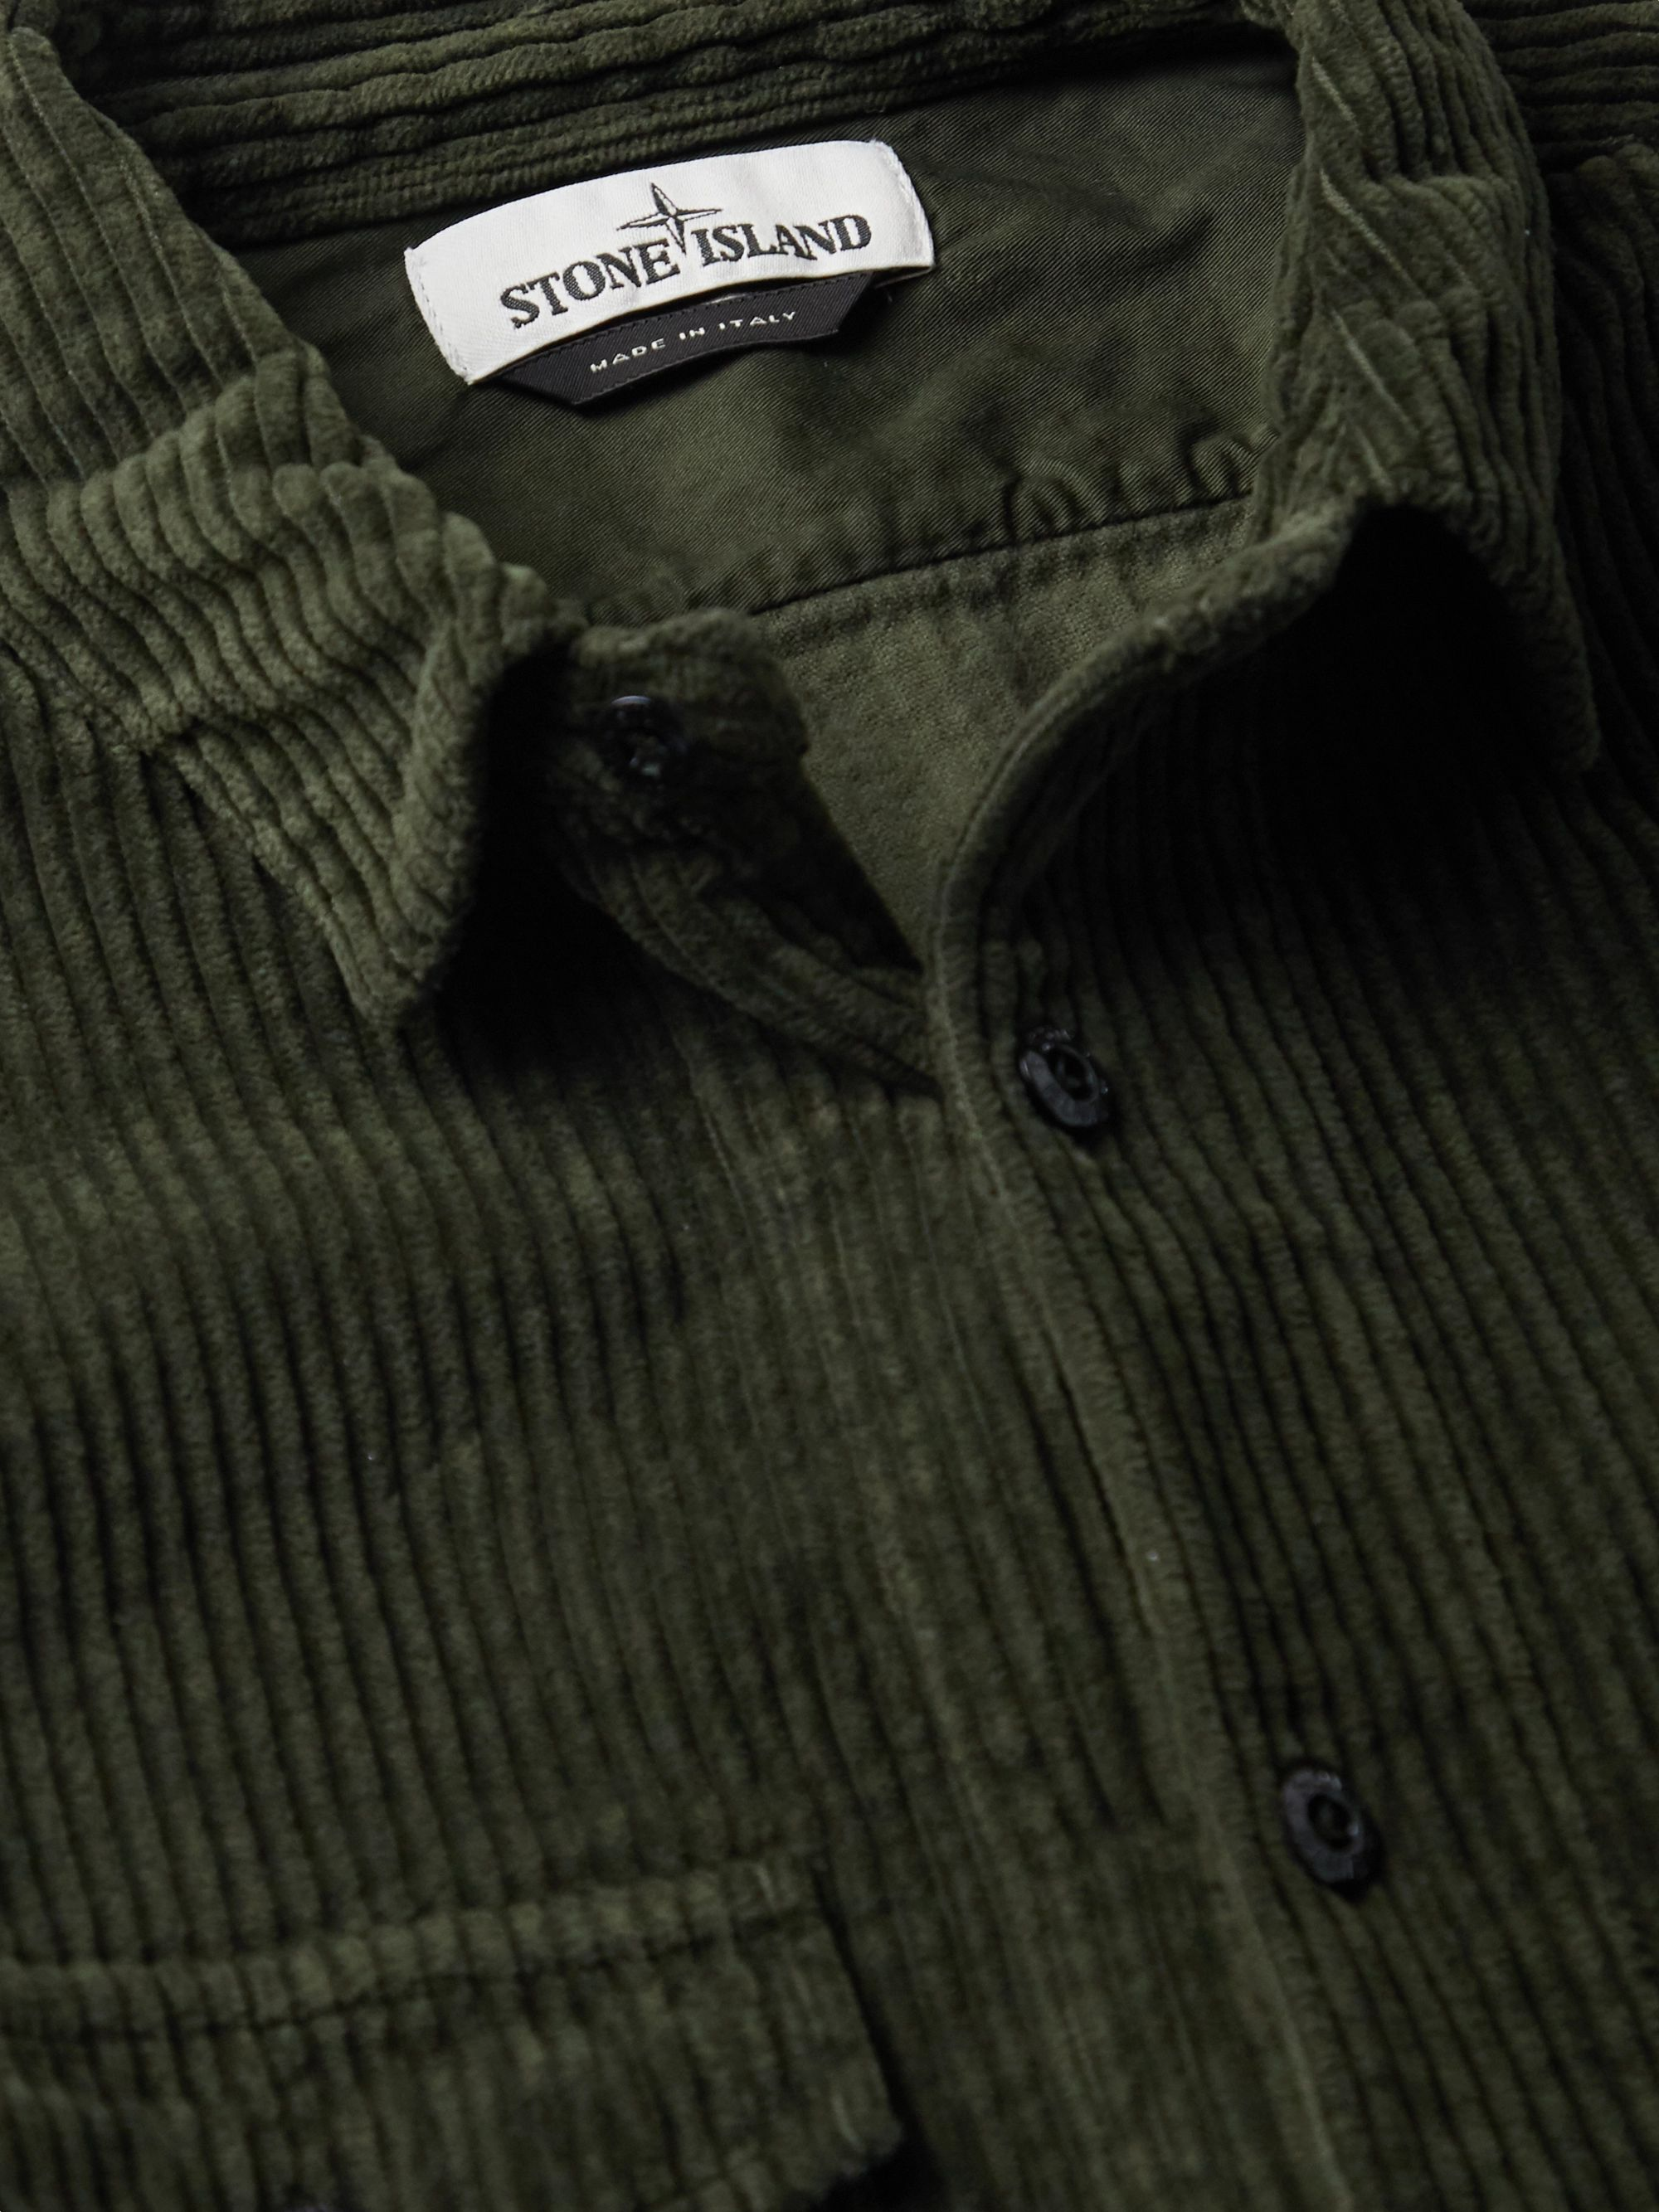 Army Green Cotton-corduroy Shirt | Stone Island